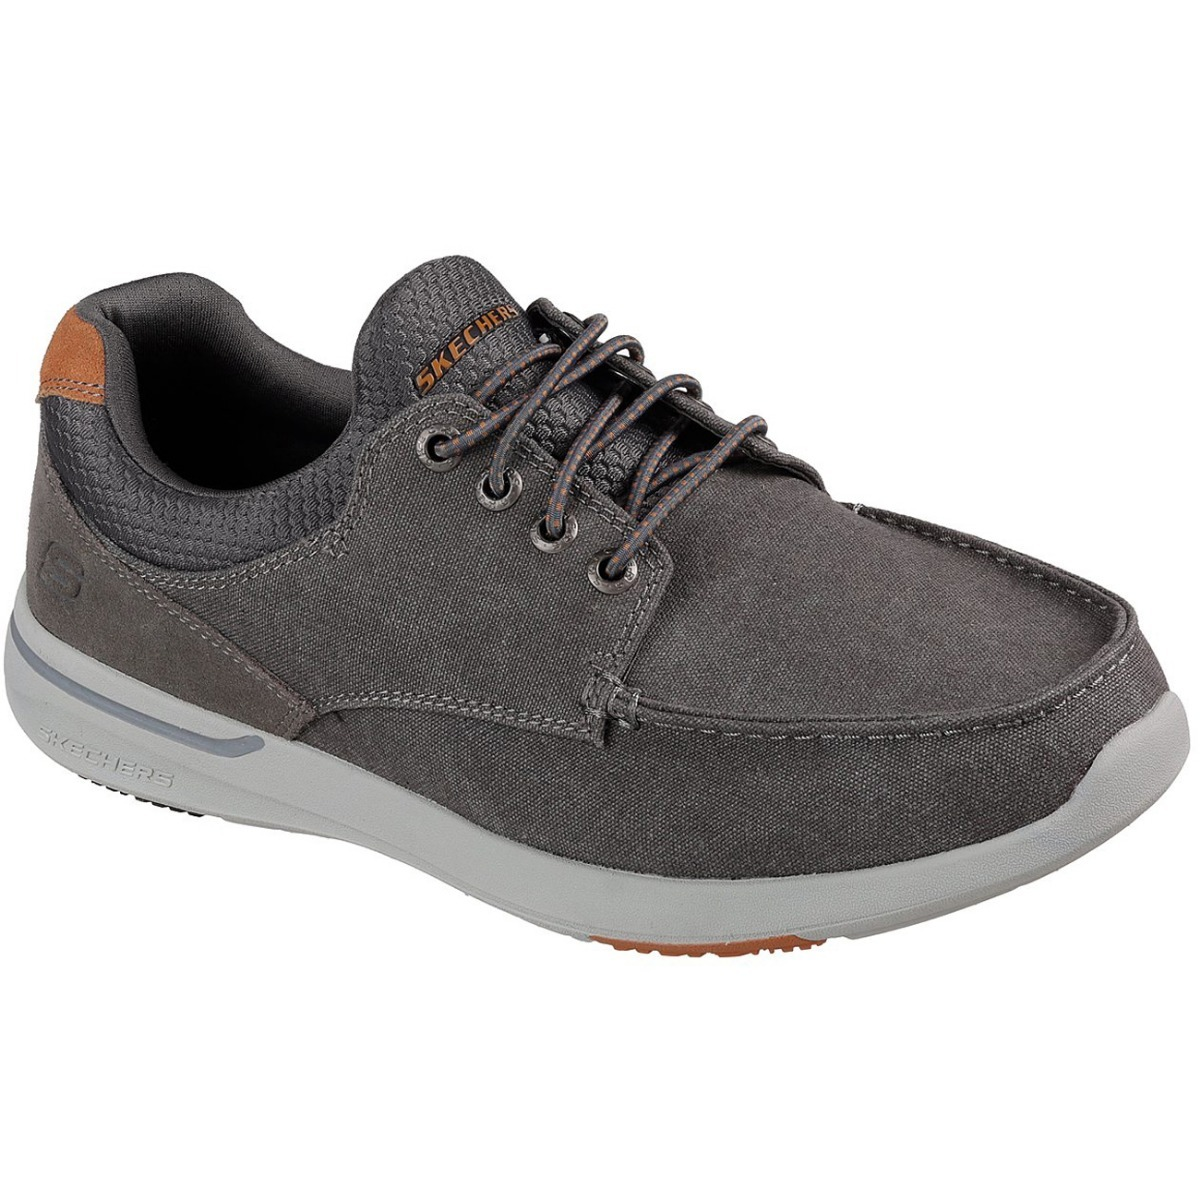 Memory Relaxed Foam Skechers Gris Elent Casual Fit Zapatos PSHq8w